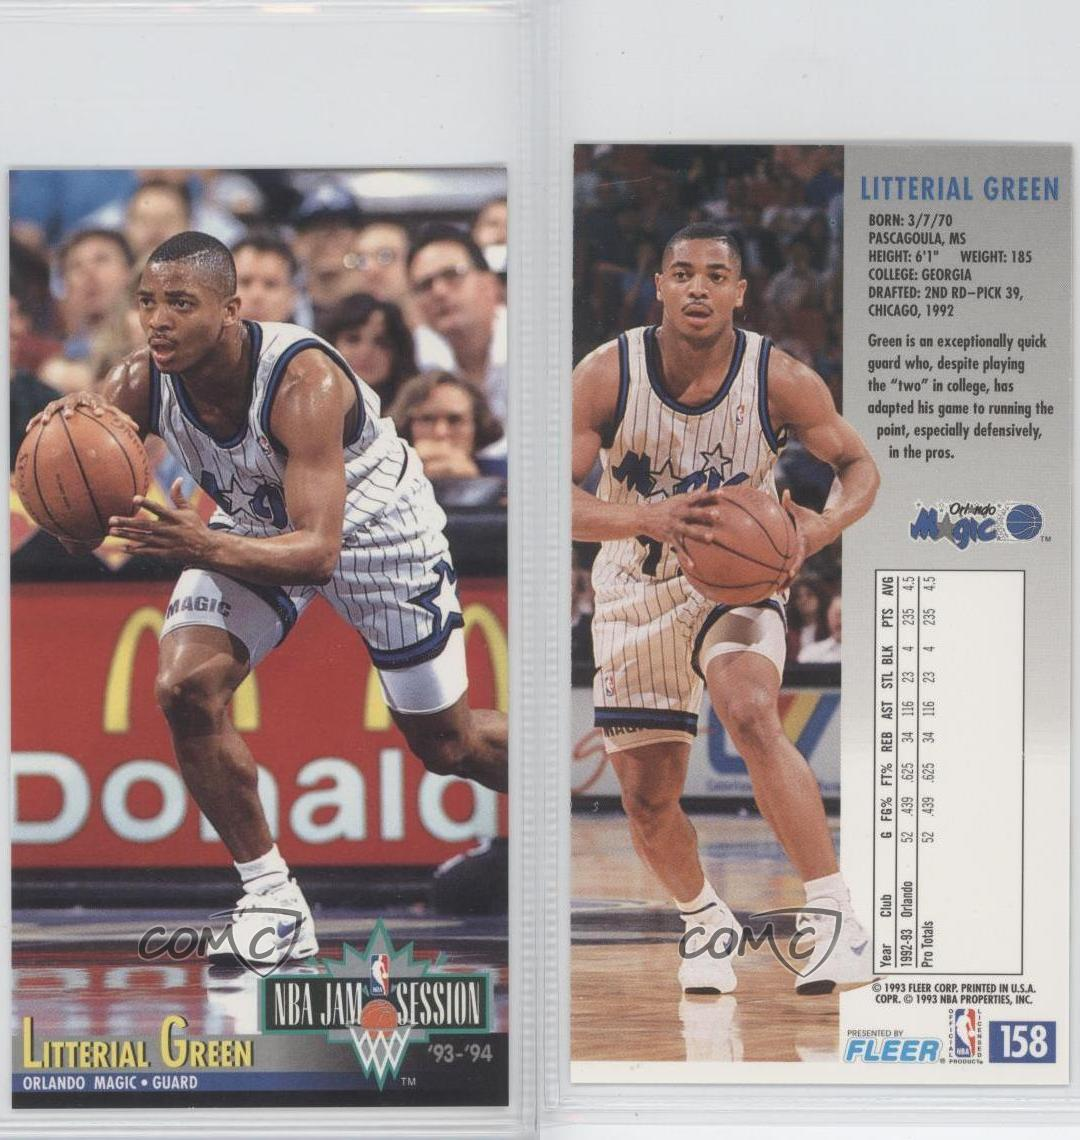 1993-94 NBA Jam Session #158 Litterial Green Orlando Magic